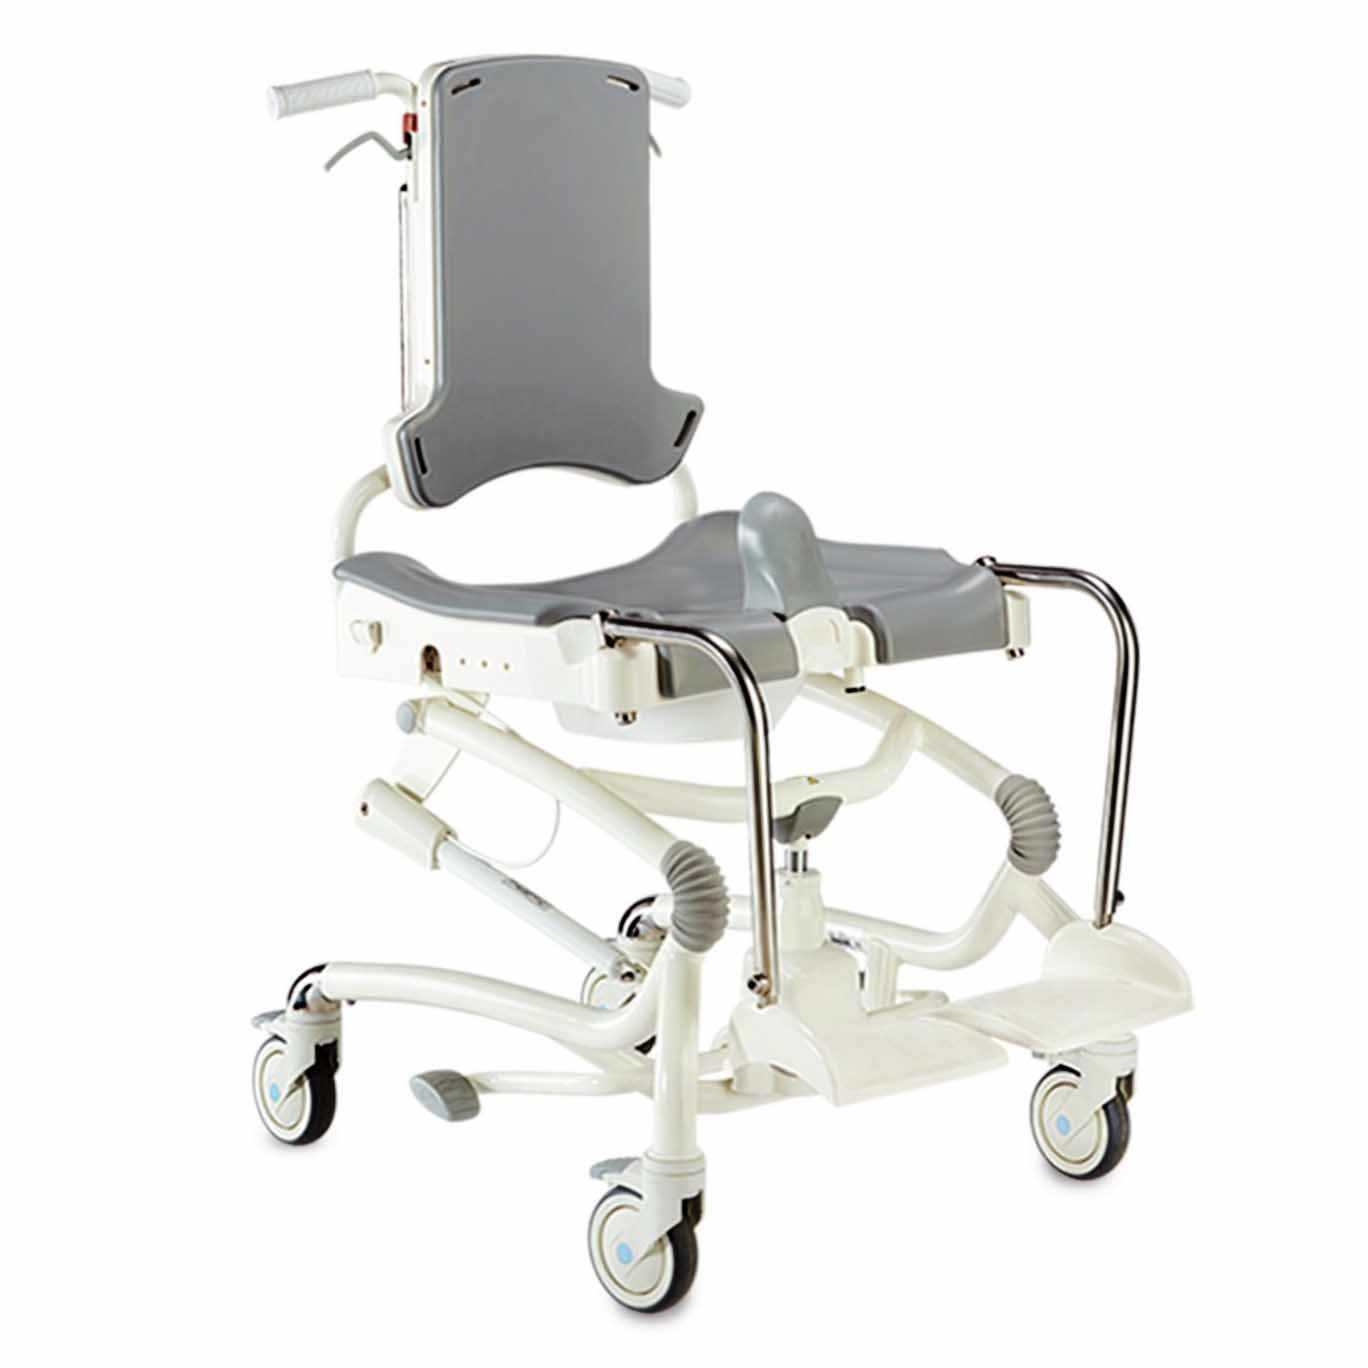 R82 Heron toilet bath chair